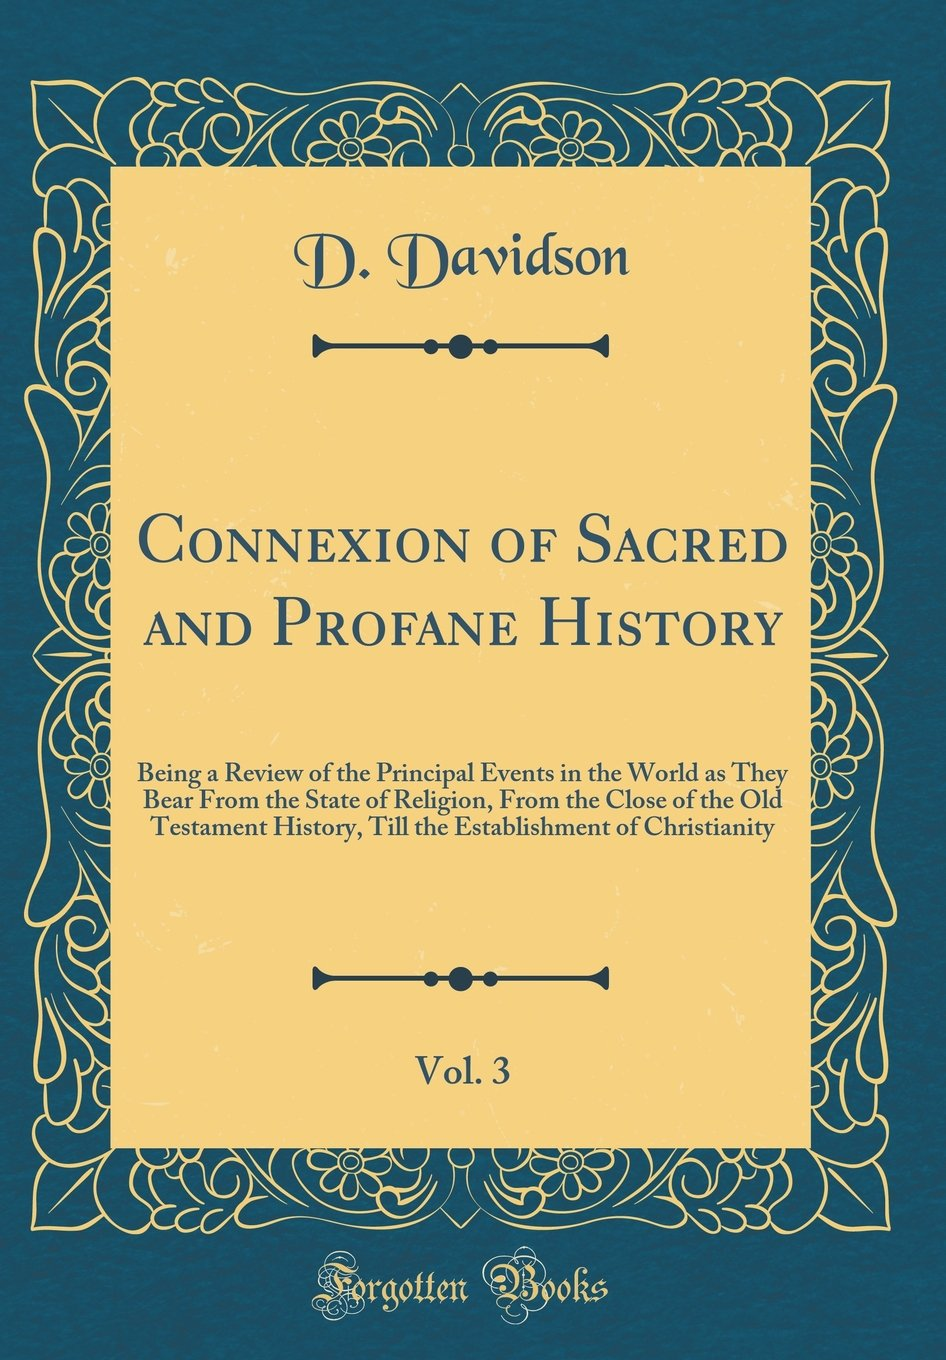 Download Connexion of Sacred and Profane History, Vol. 3: Being a Review of the Principal Events in the World as They Bear From the State of Religion, From the ... of Christianity (Classic Reprint) PDF